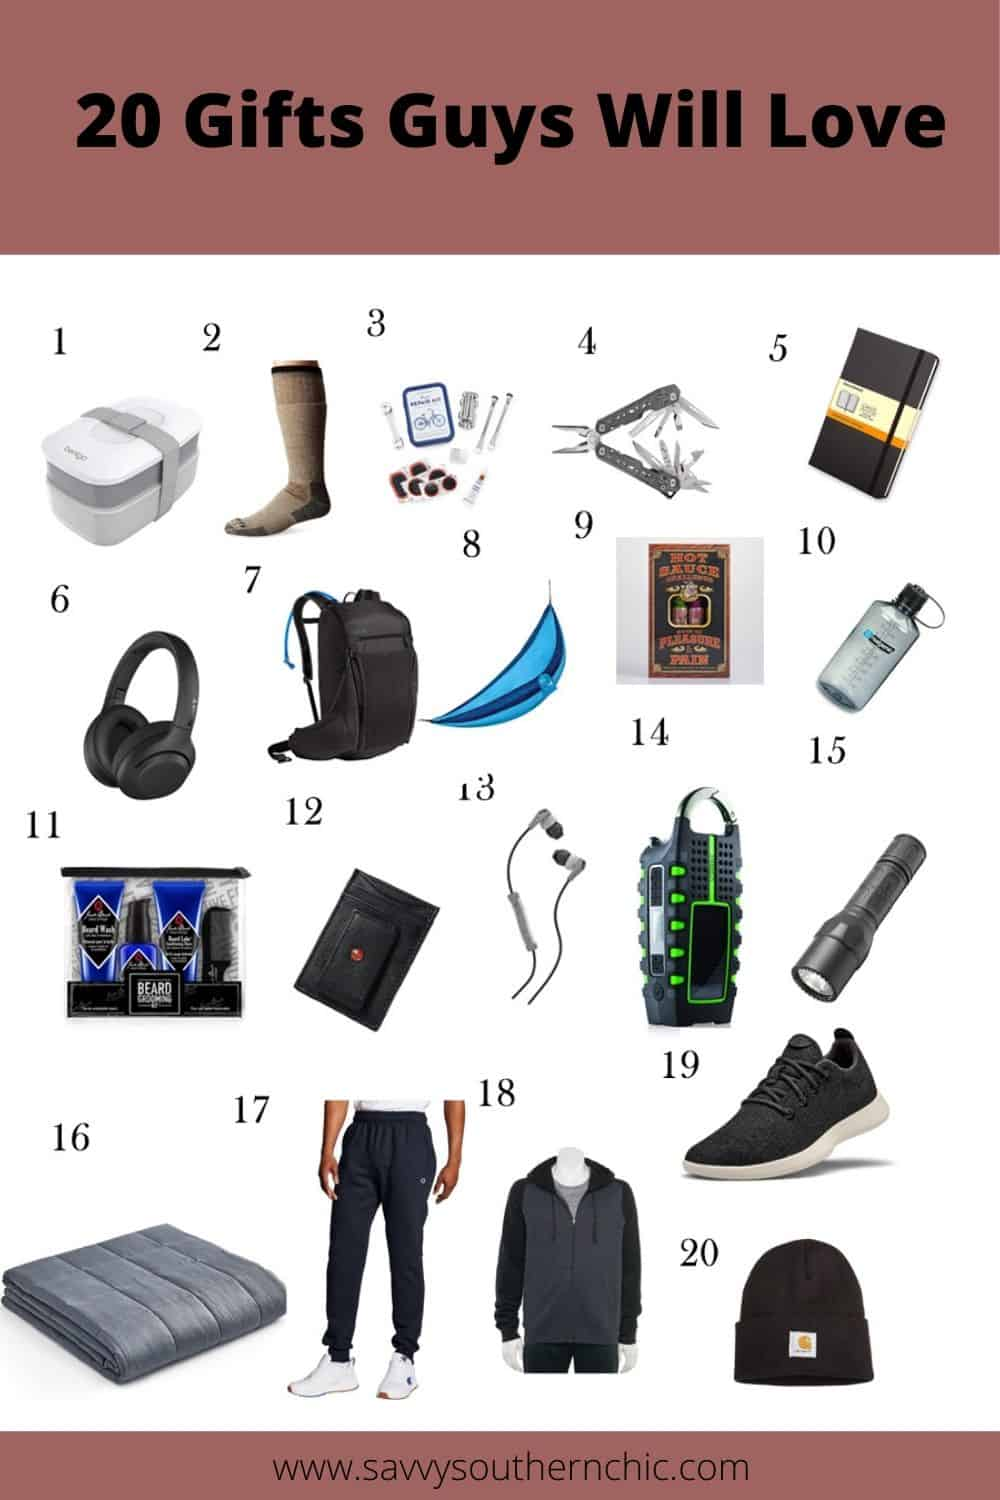 20 Gifts Guys Really Want for Christmas